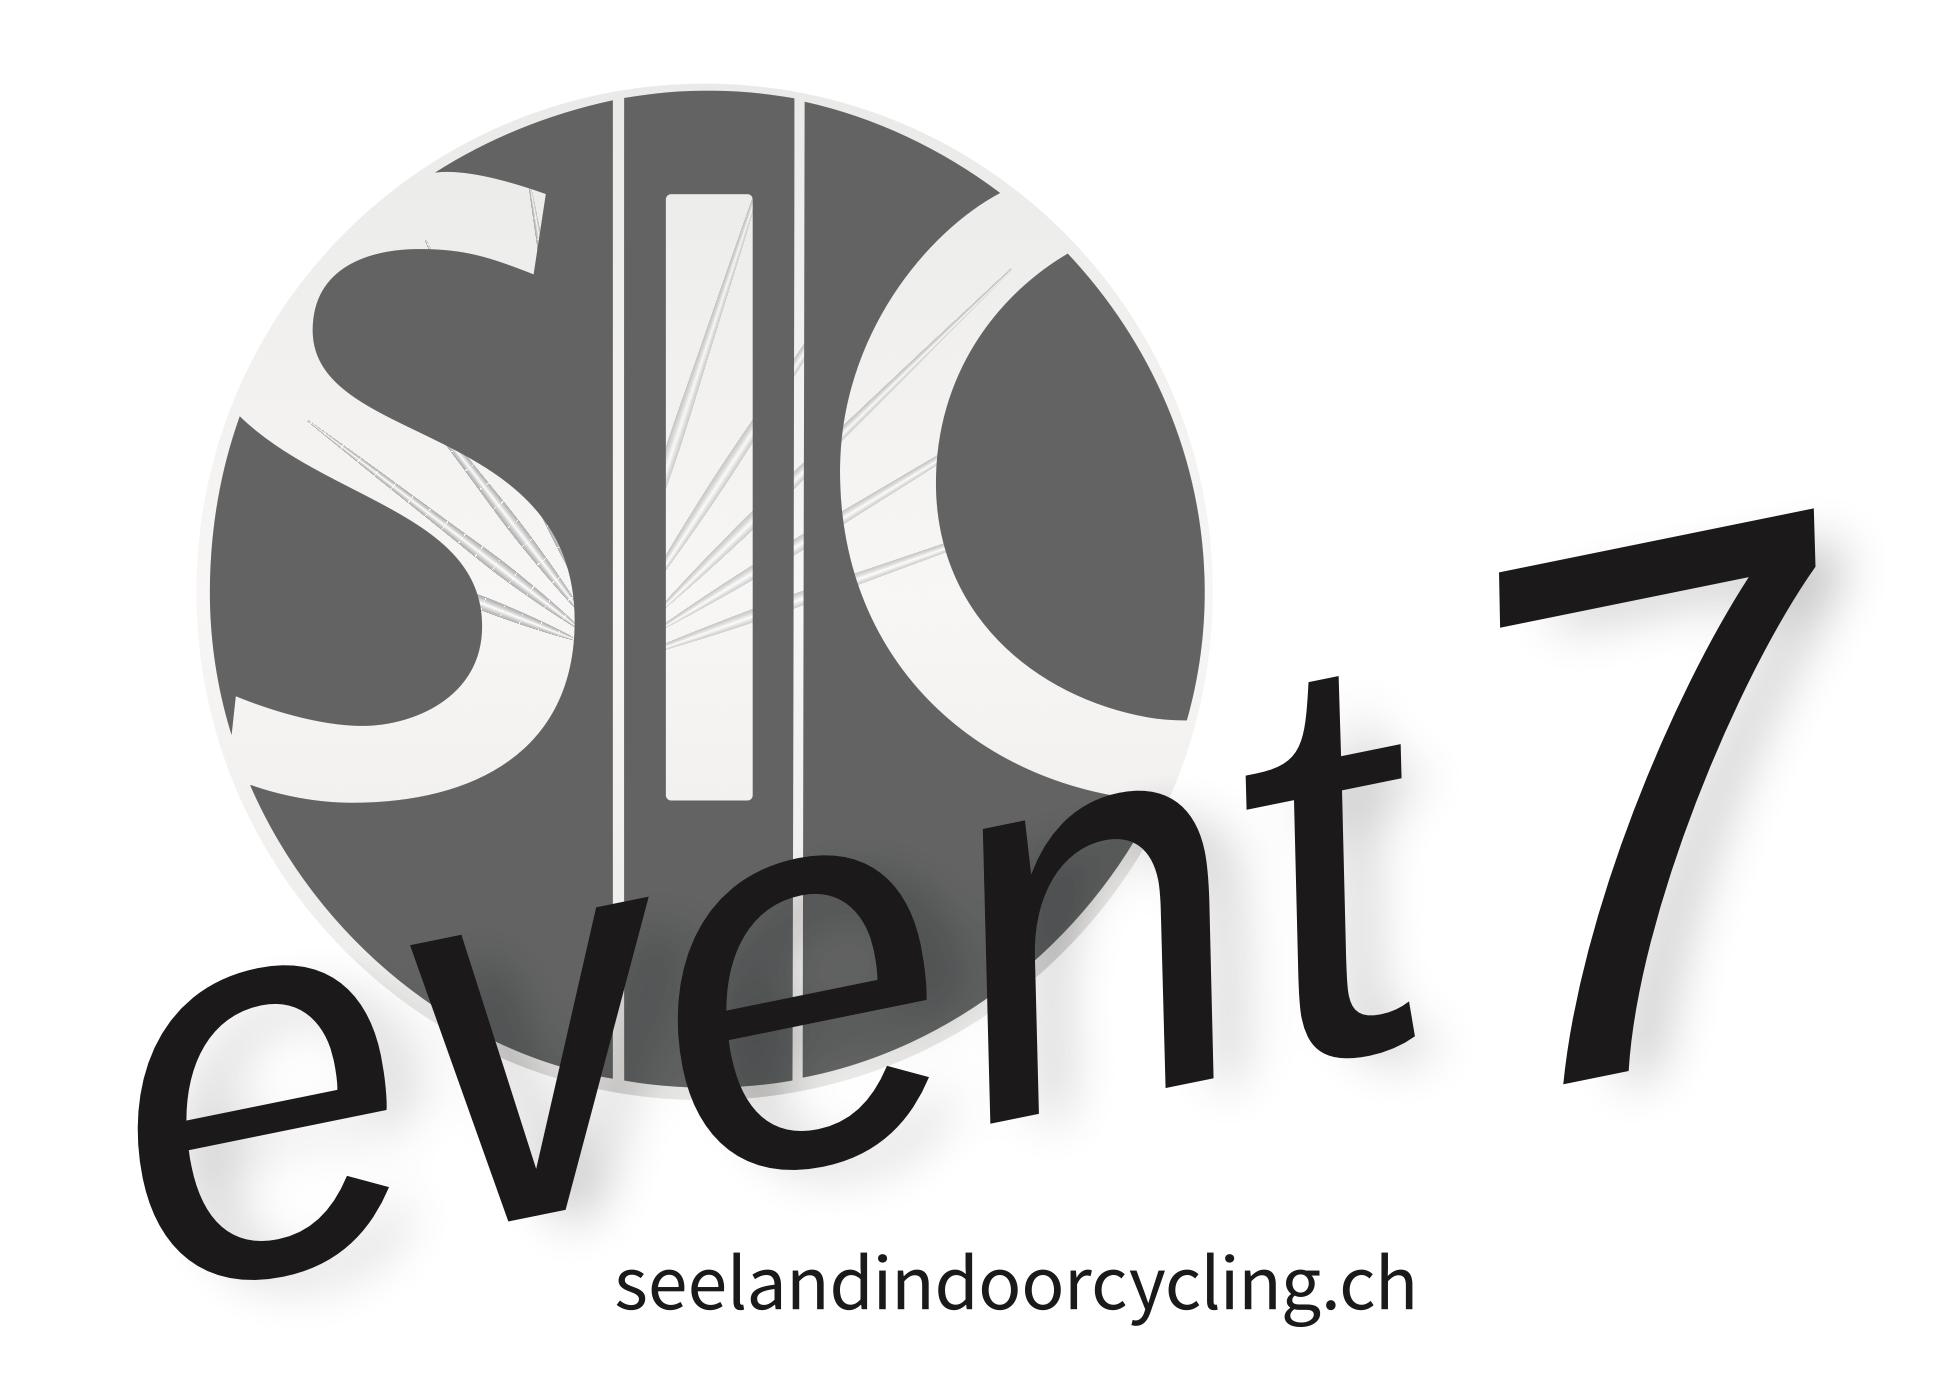 Seelandindoorcycling